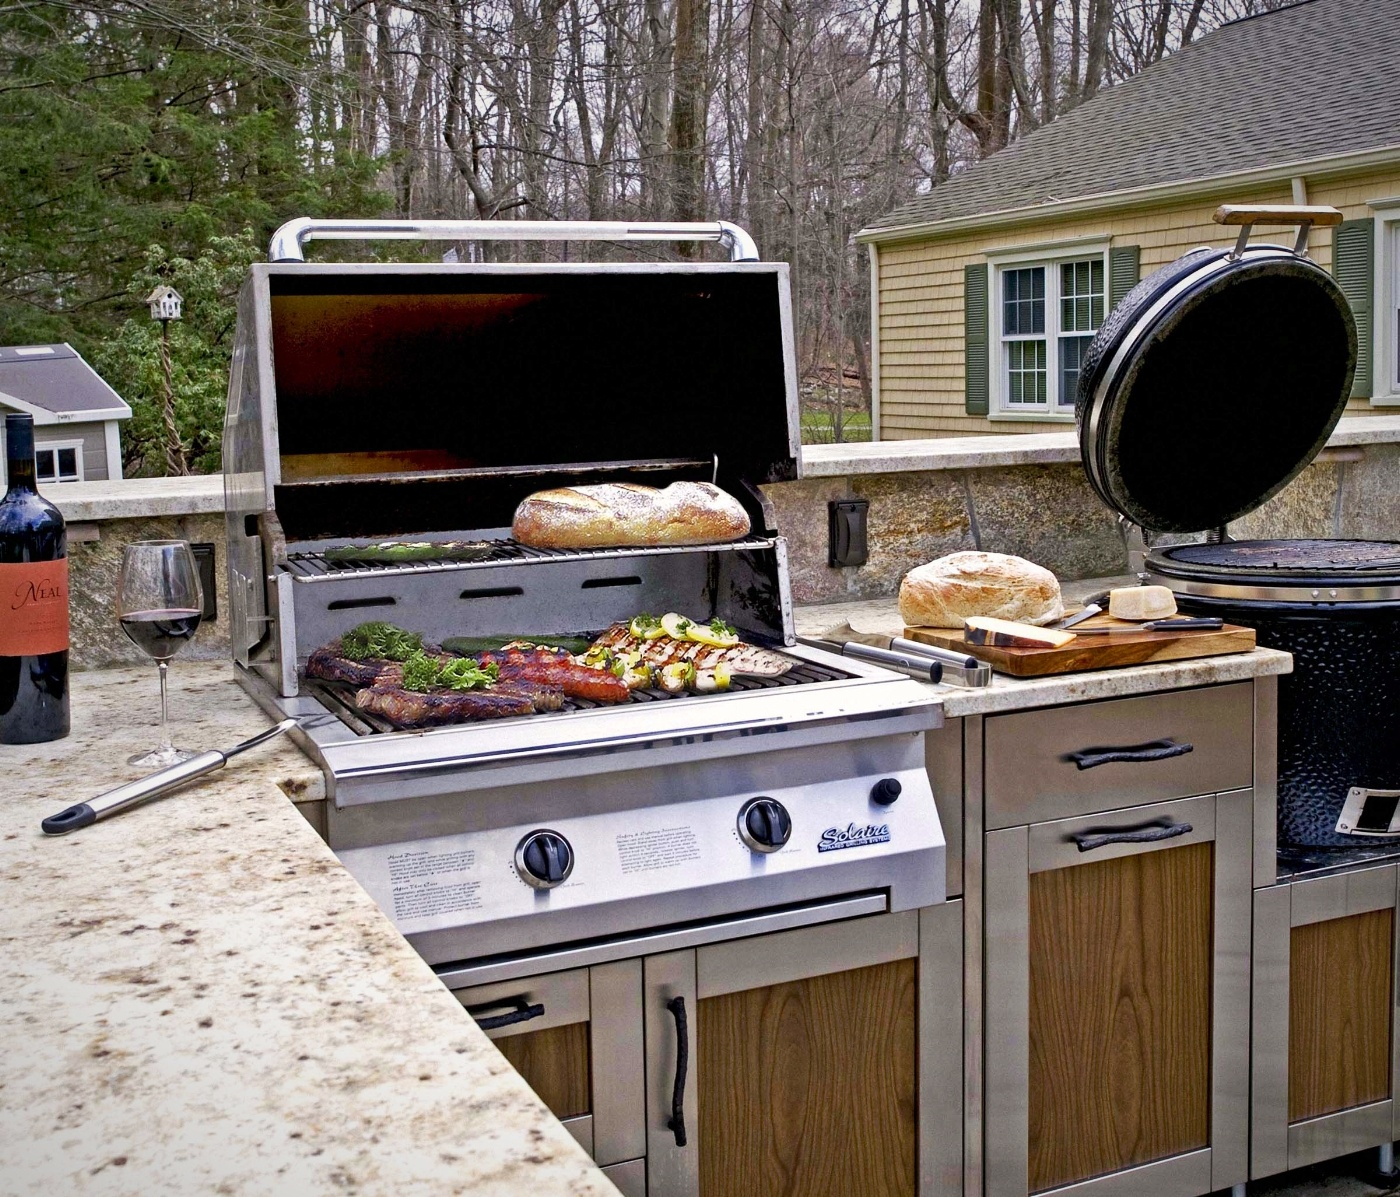 Danver Outdoor Kitchen Grill In Use